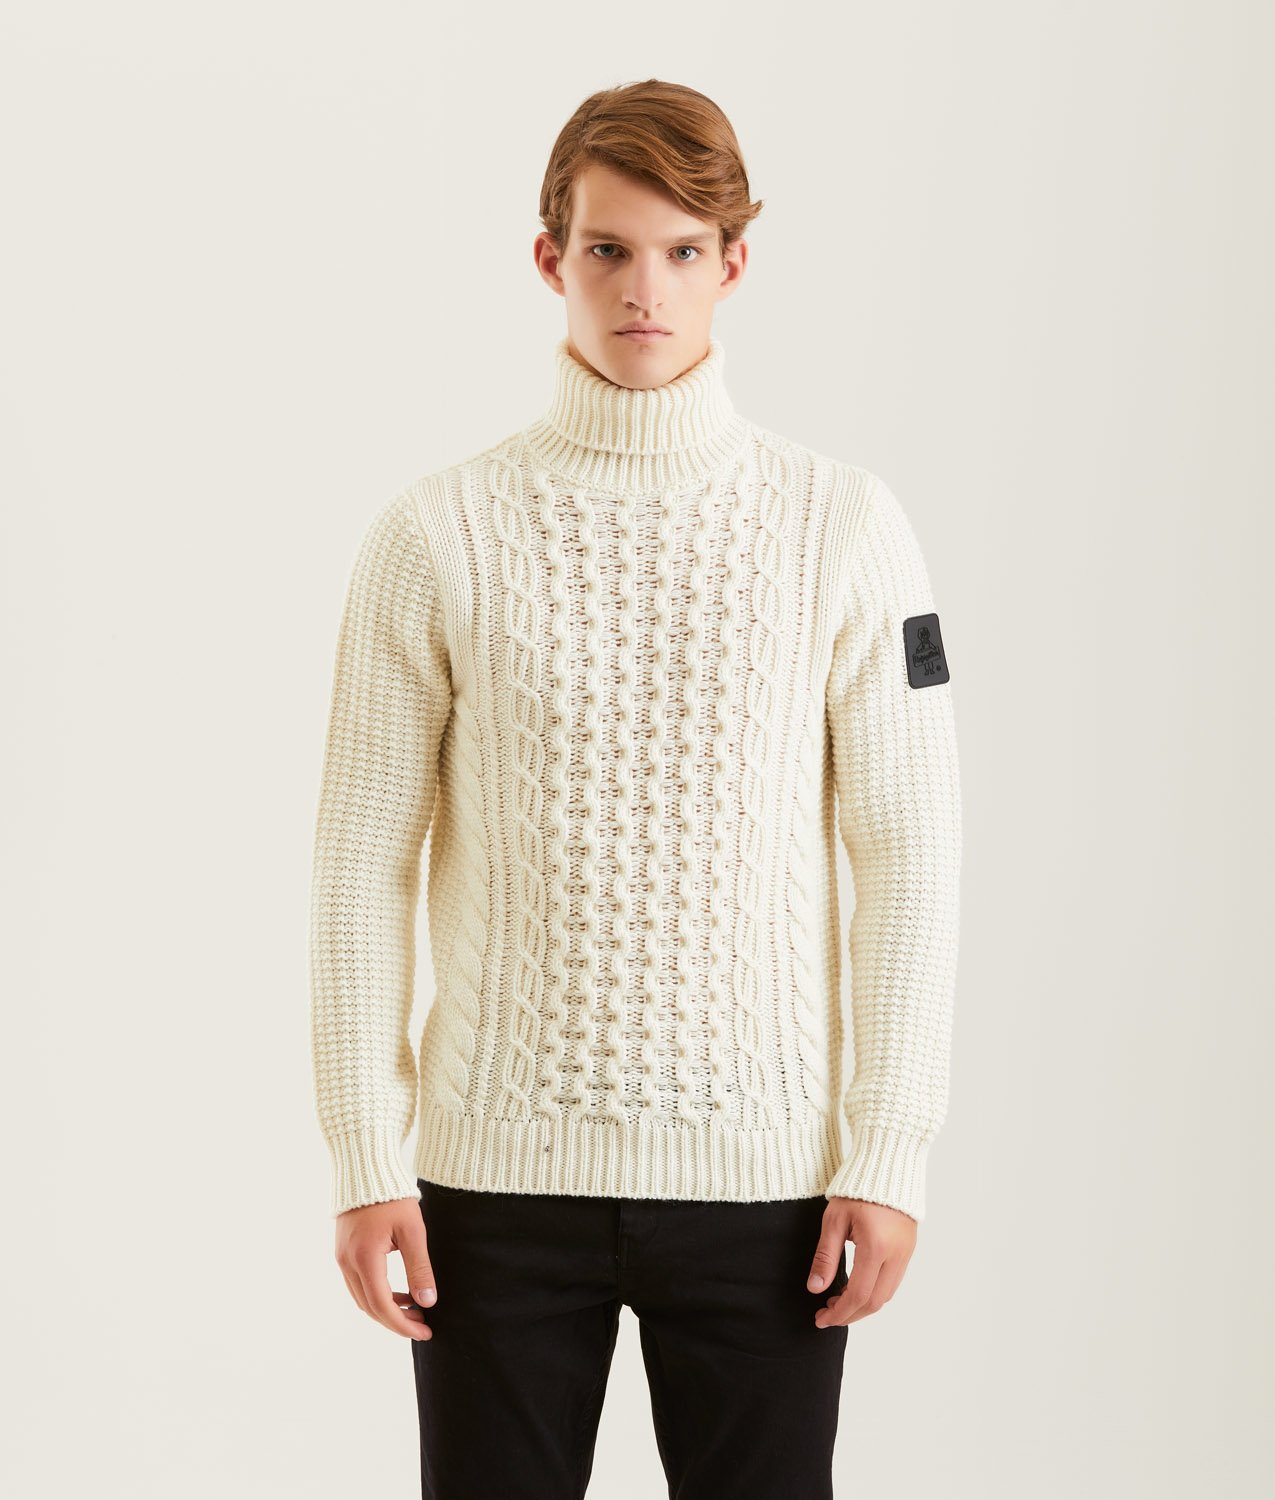 DAVIS KNIT SWEATER